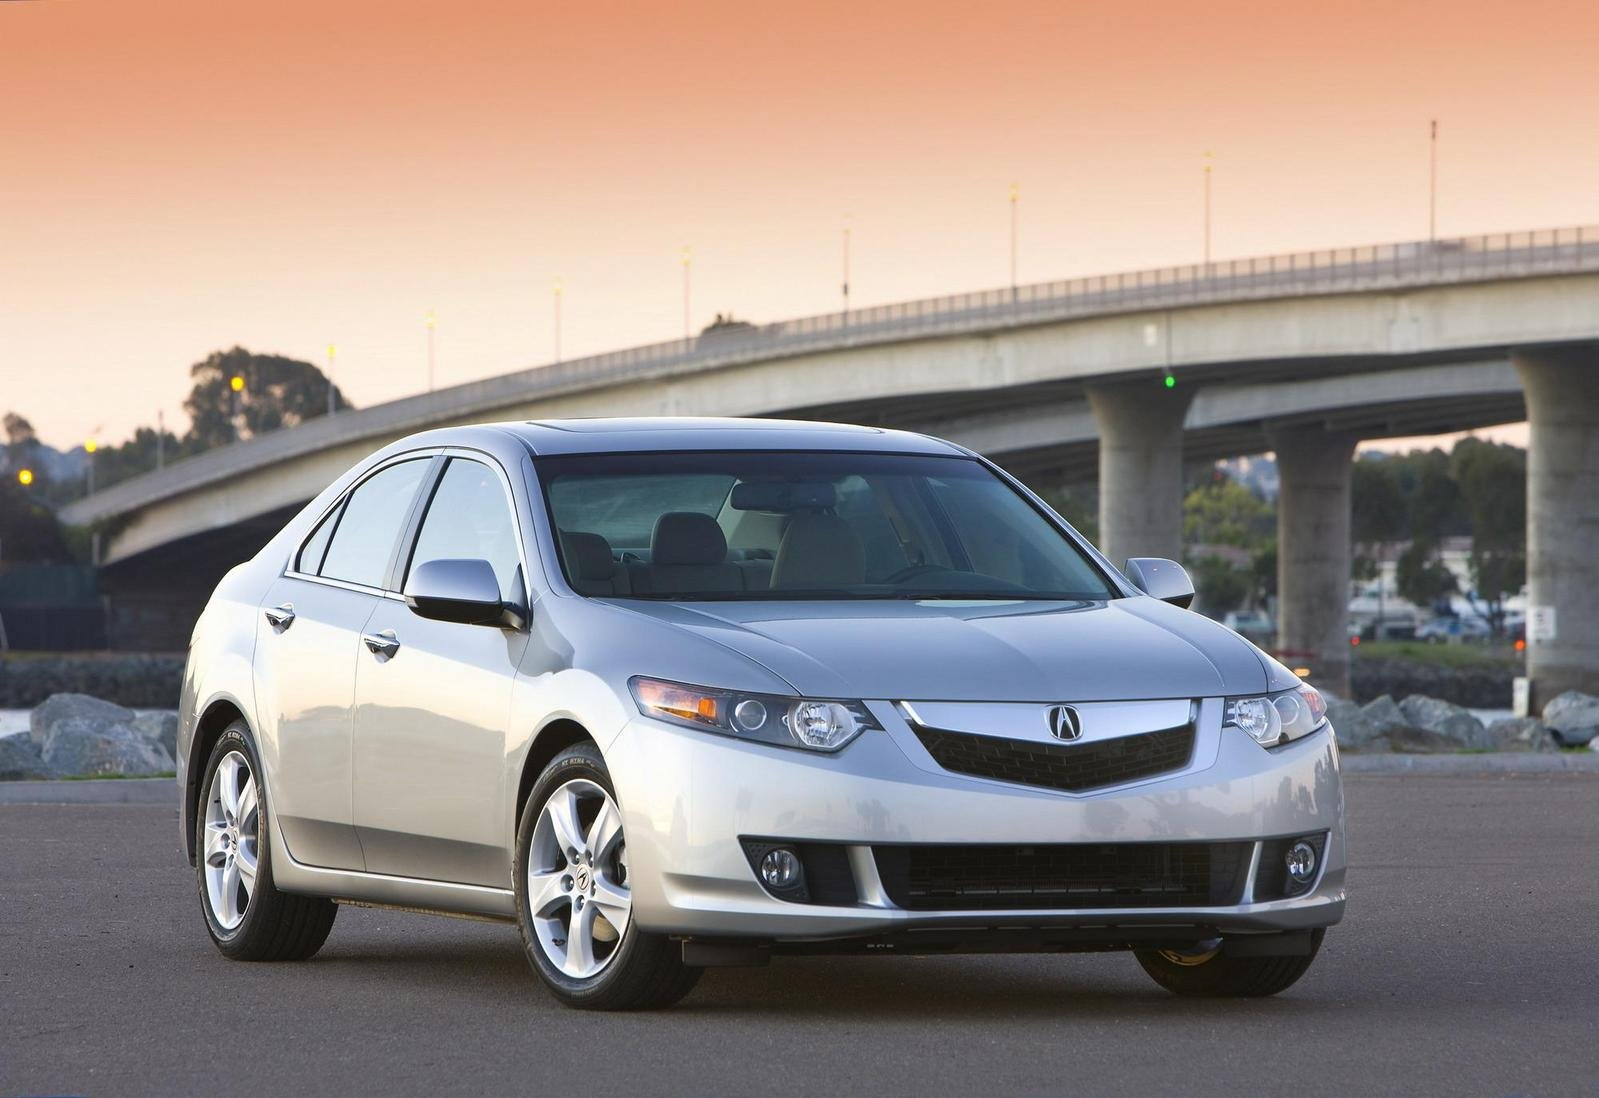 2010 acura tsx picture 325673 car review top speed. Black Bedroom Furniture Sets. Home Design Ideas